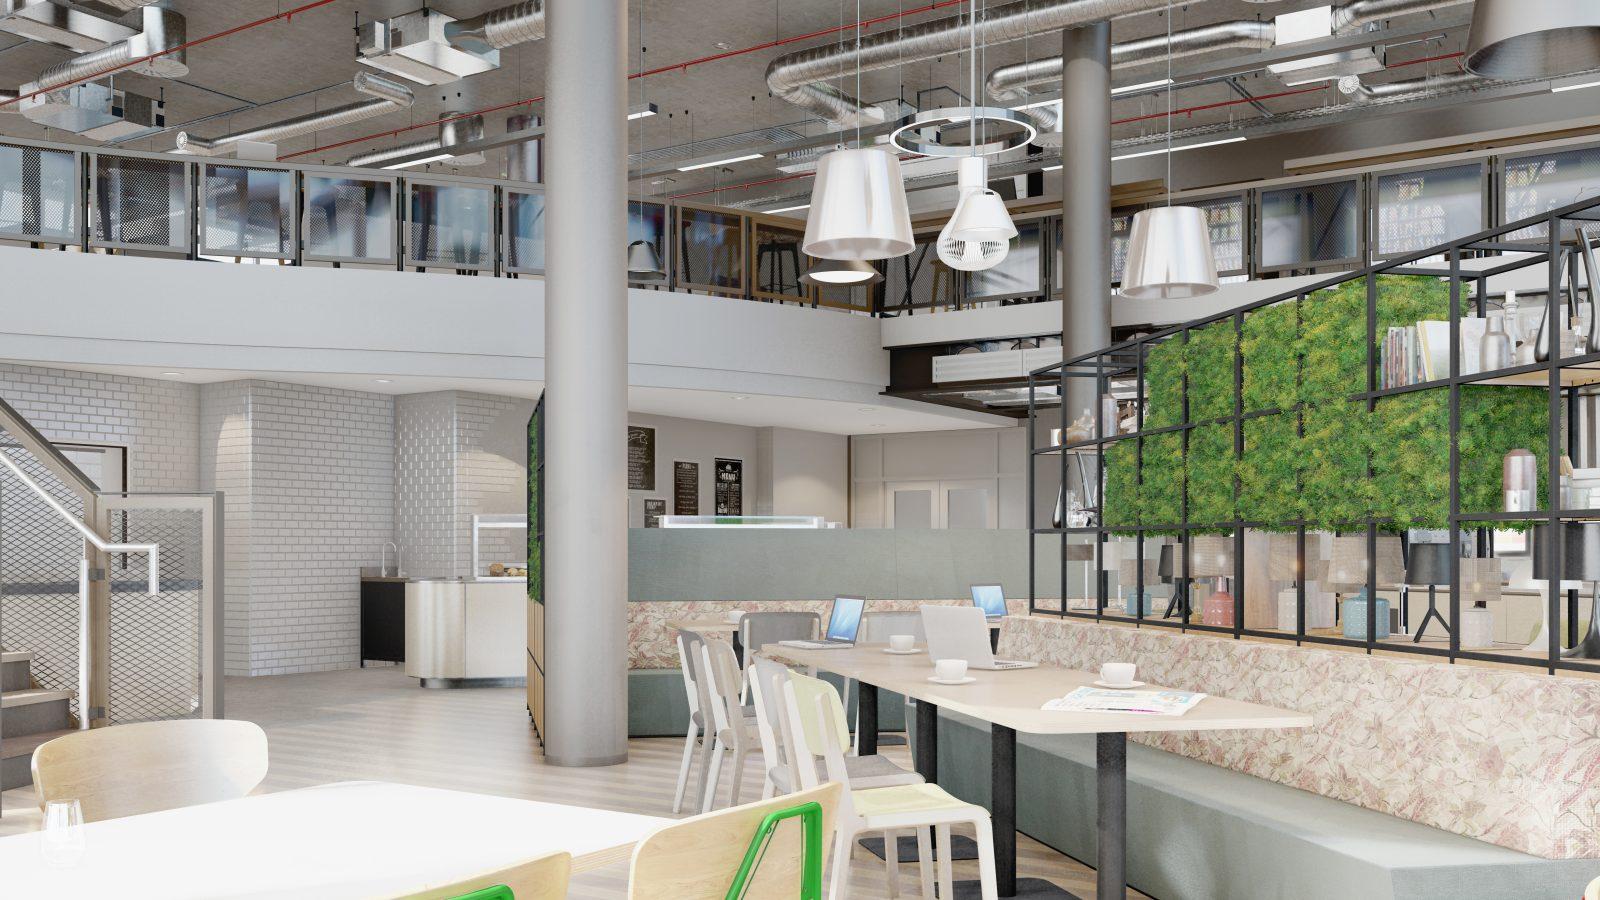 We're making changes: Office Fit-Out firm Claremont becomes employee owned